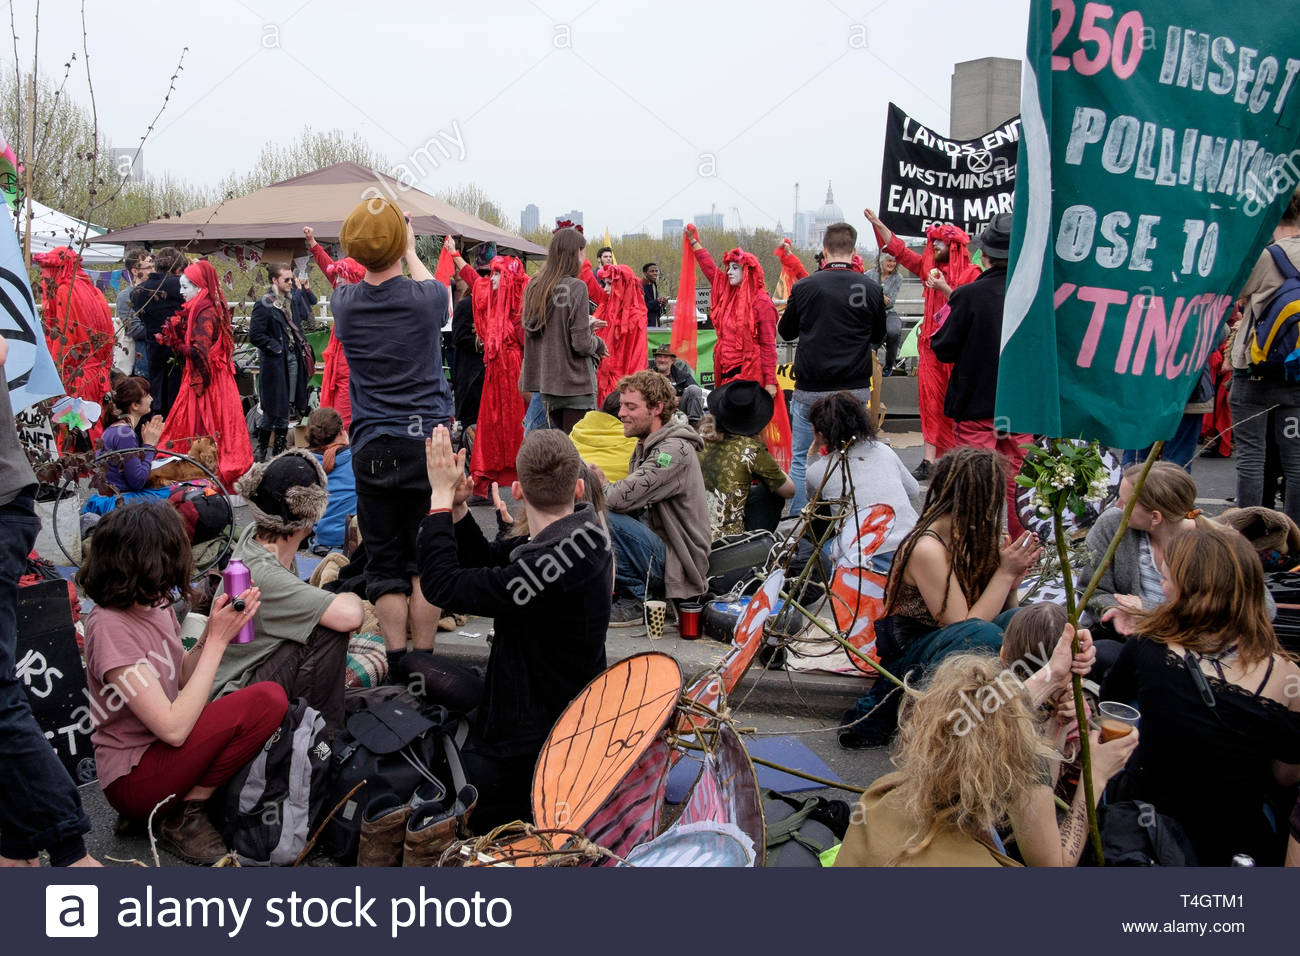 Extinction Rebellion environmental activists occupy Waterloo Bridge, London. Performance group Invisible Circus participate in the protest. - Stock Image